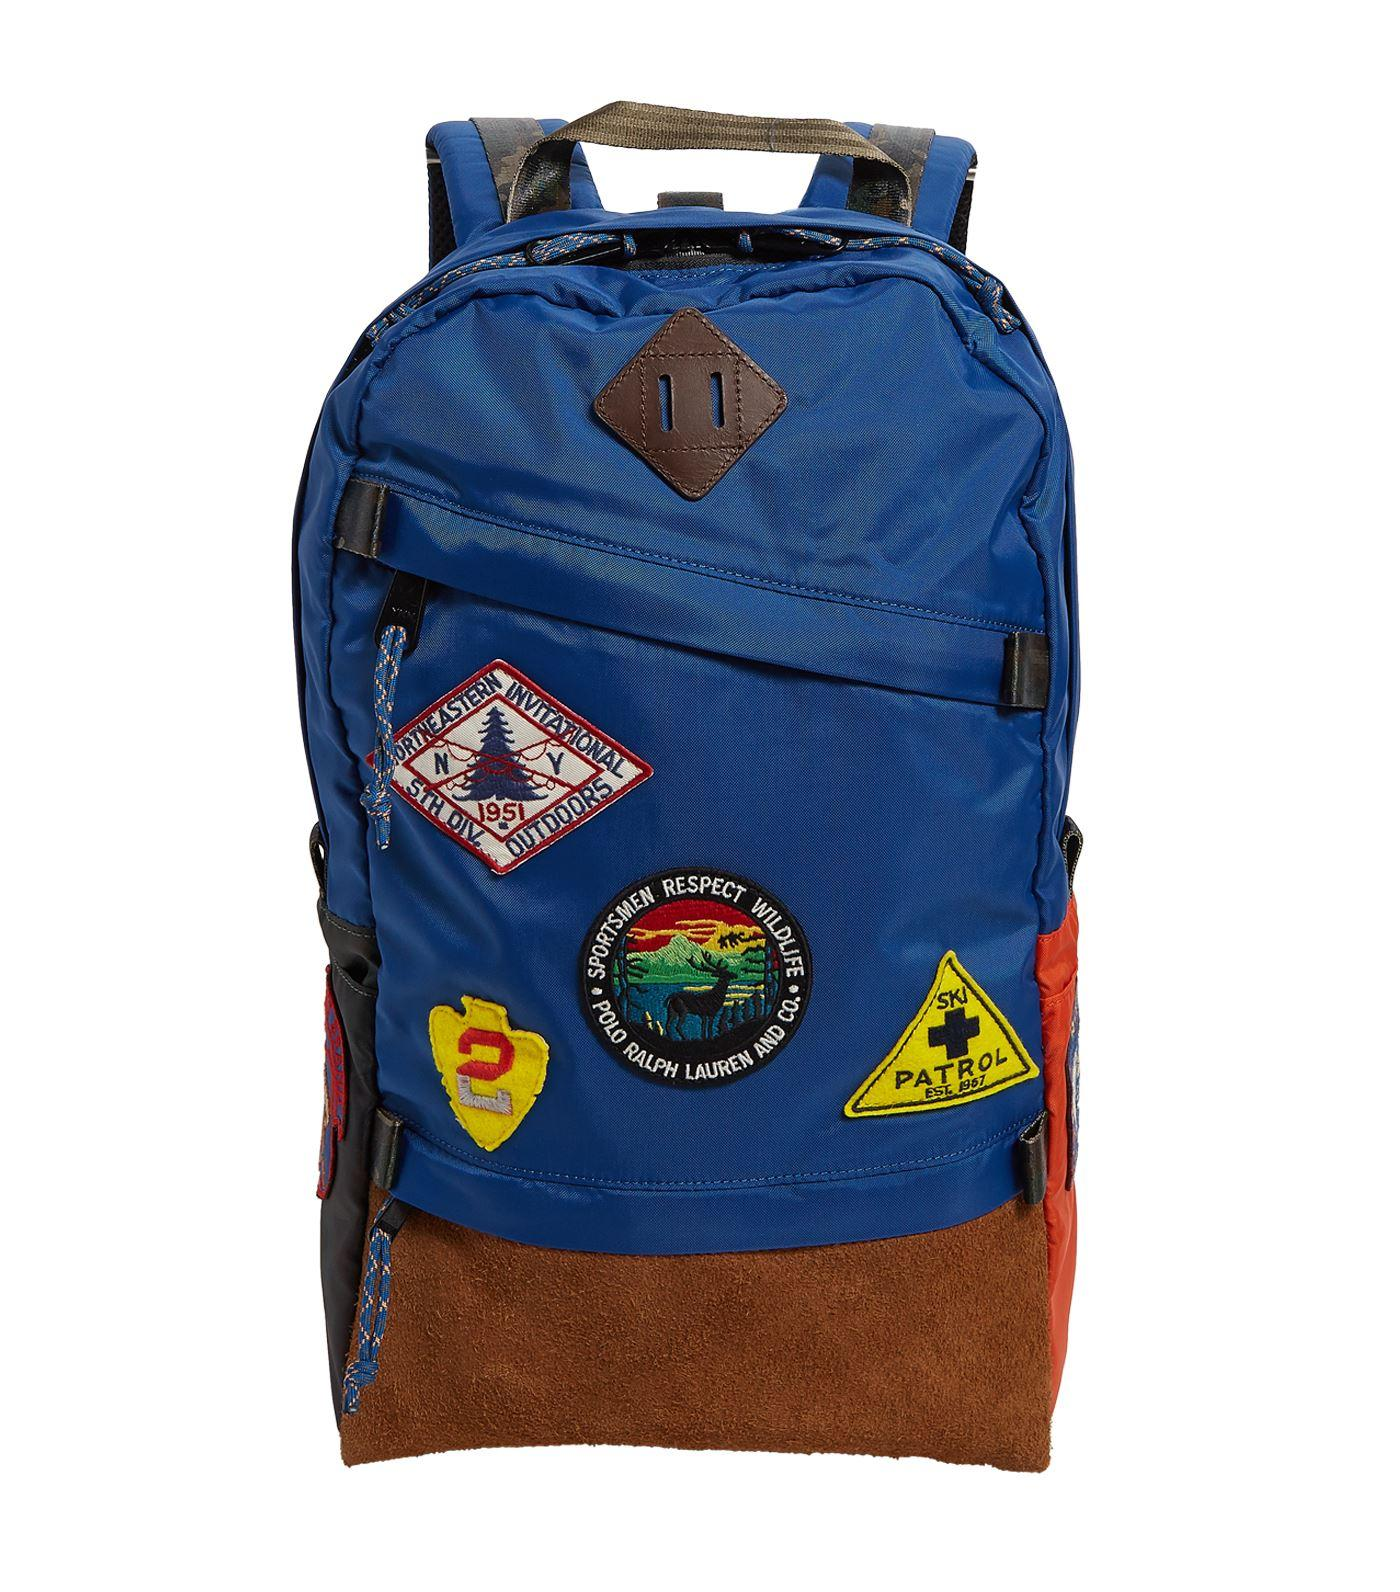 445dbc2424 Polo Ralph Lauren Great Outdoors Backpack in Blue for Men - Lyst